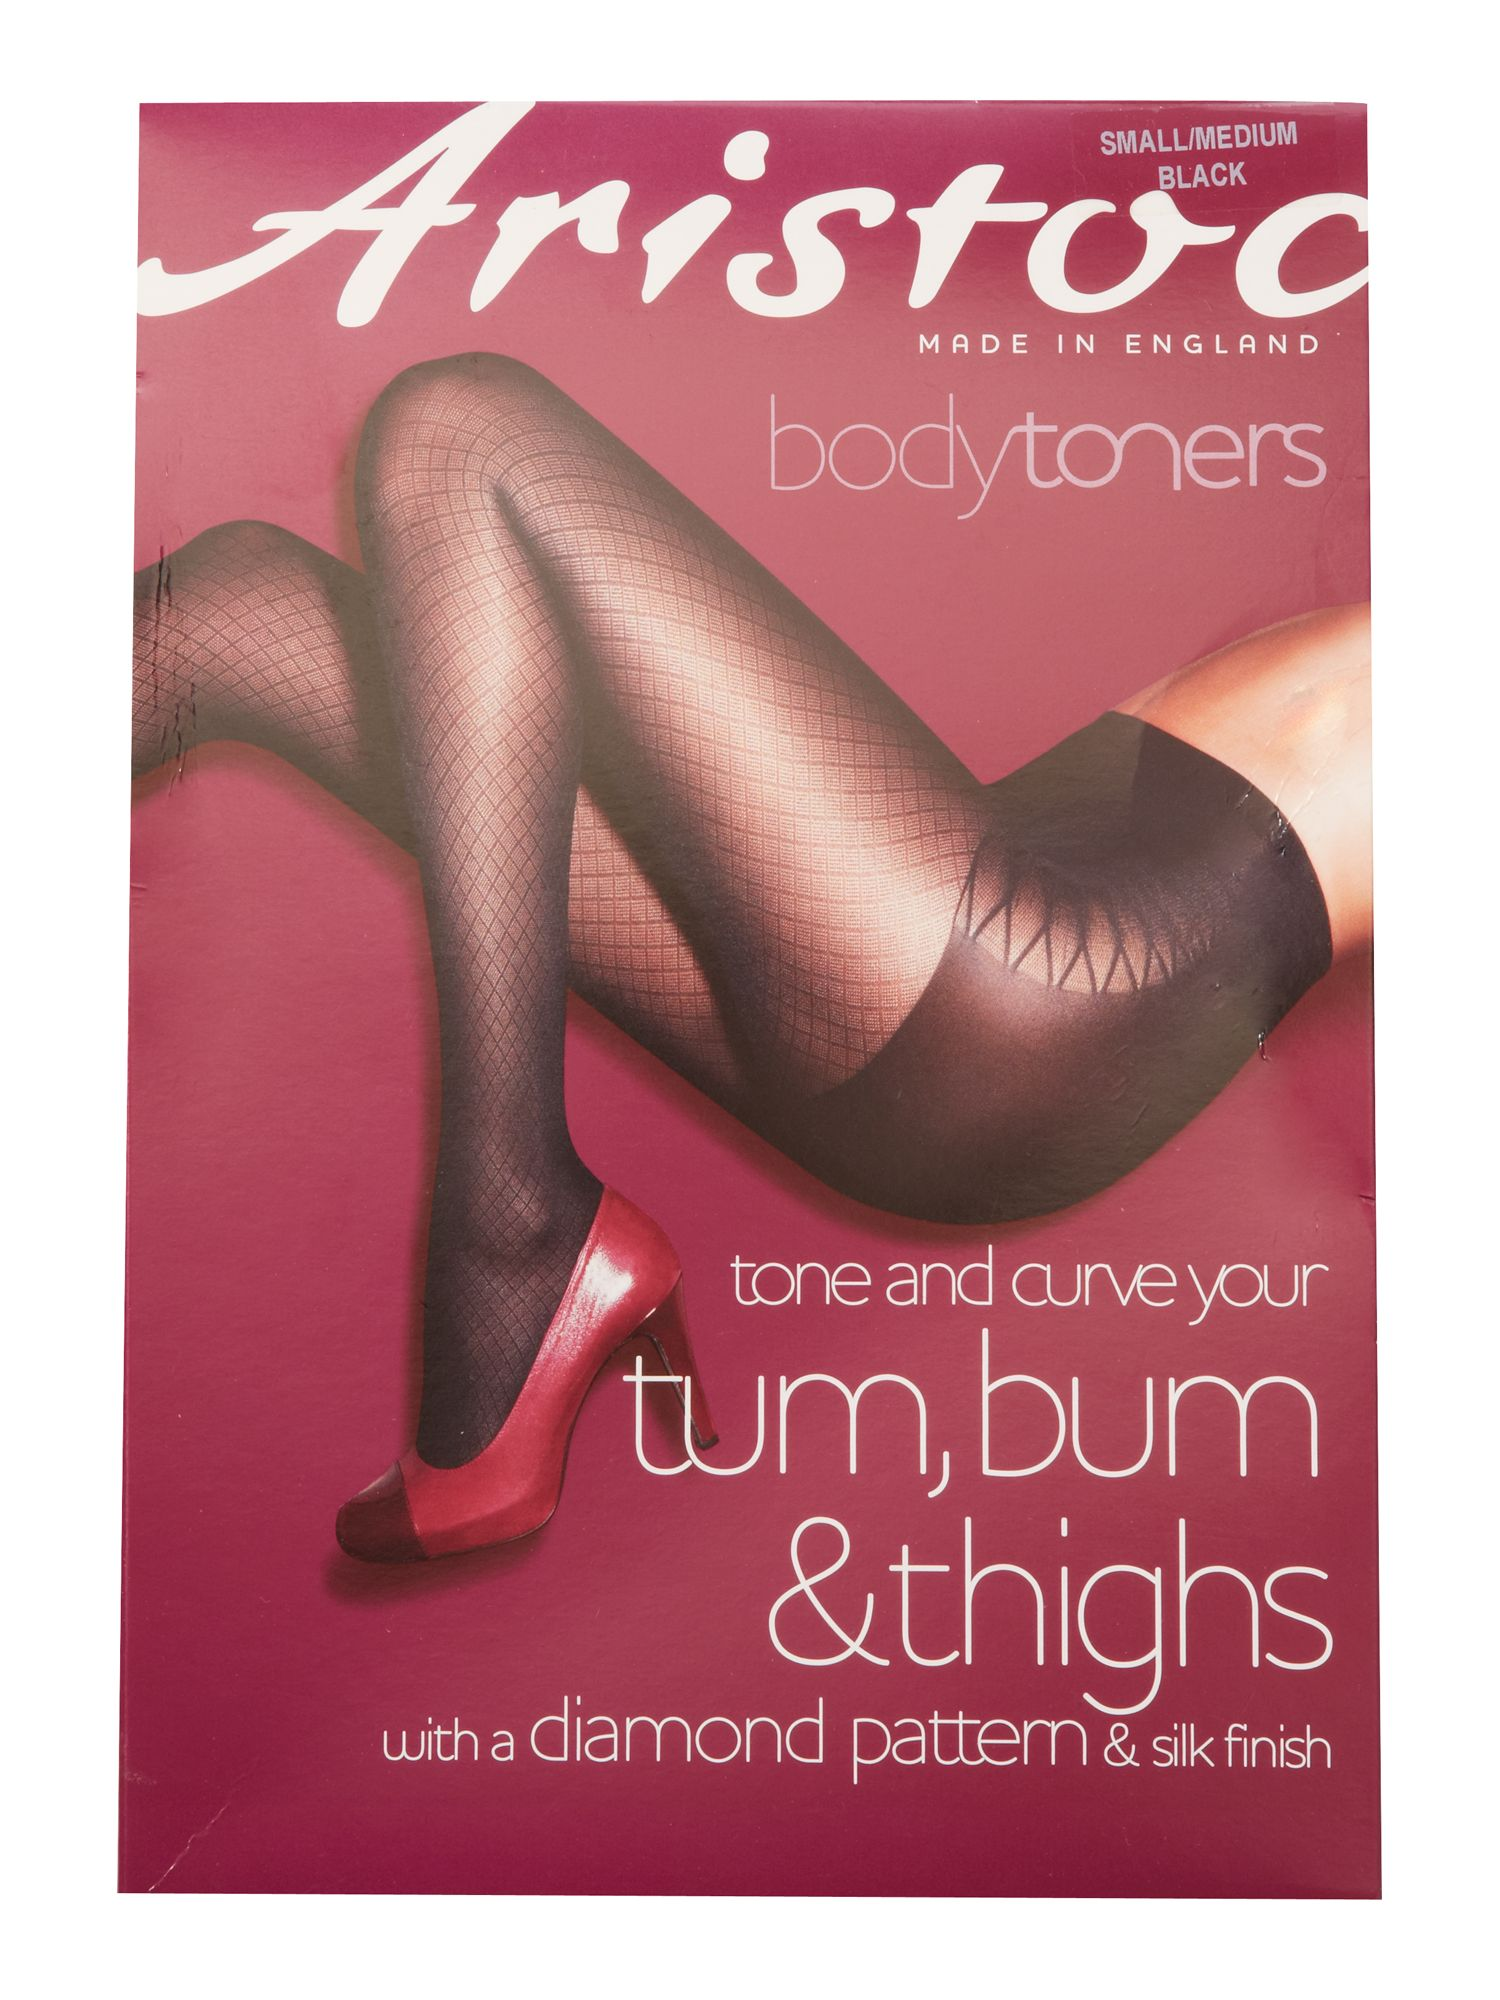 Fashion toner tights